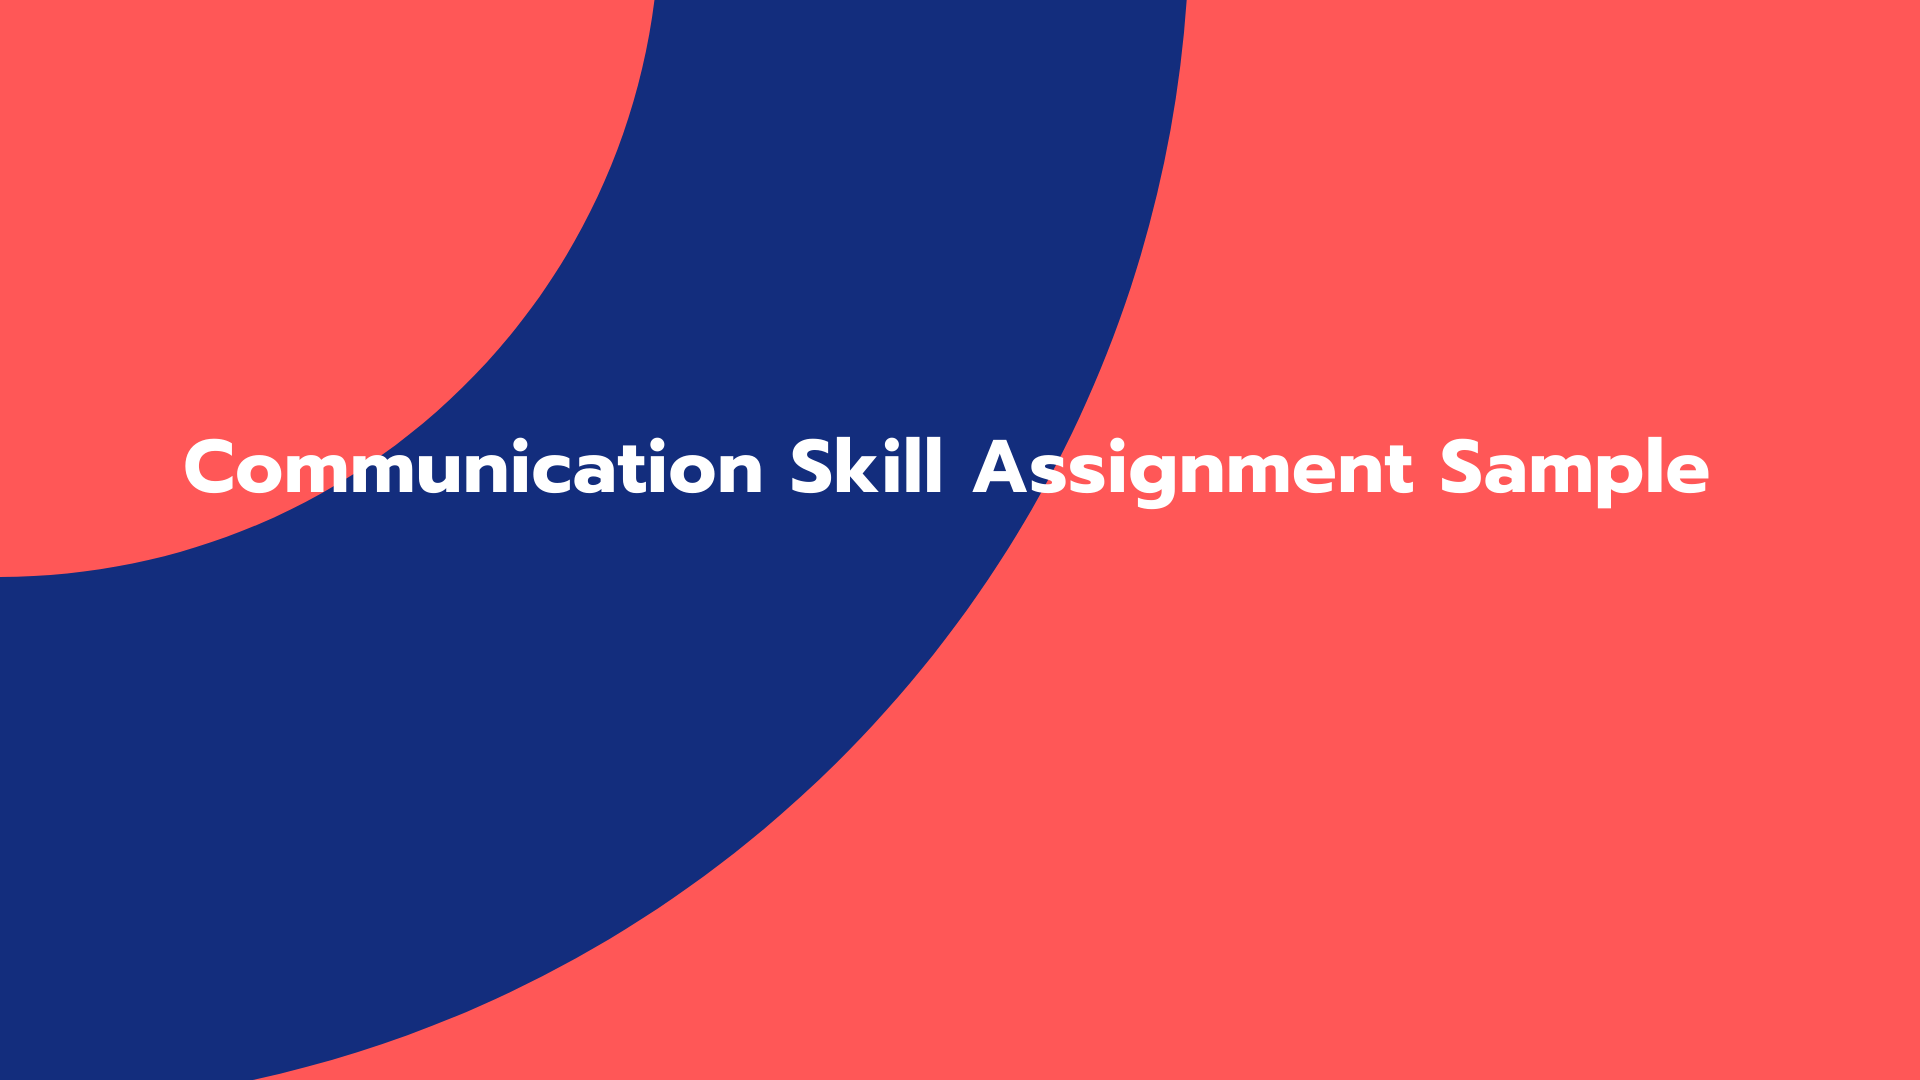 Communication Skill Assignment Sample